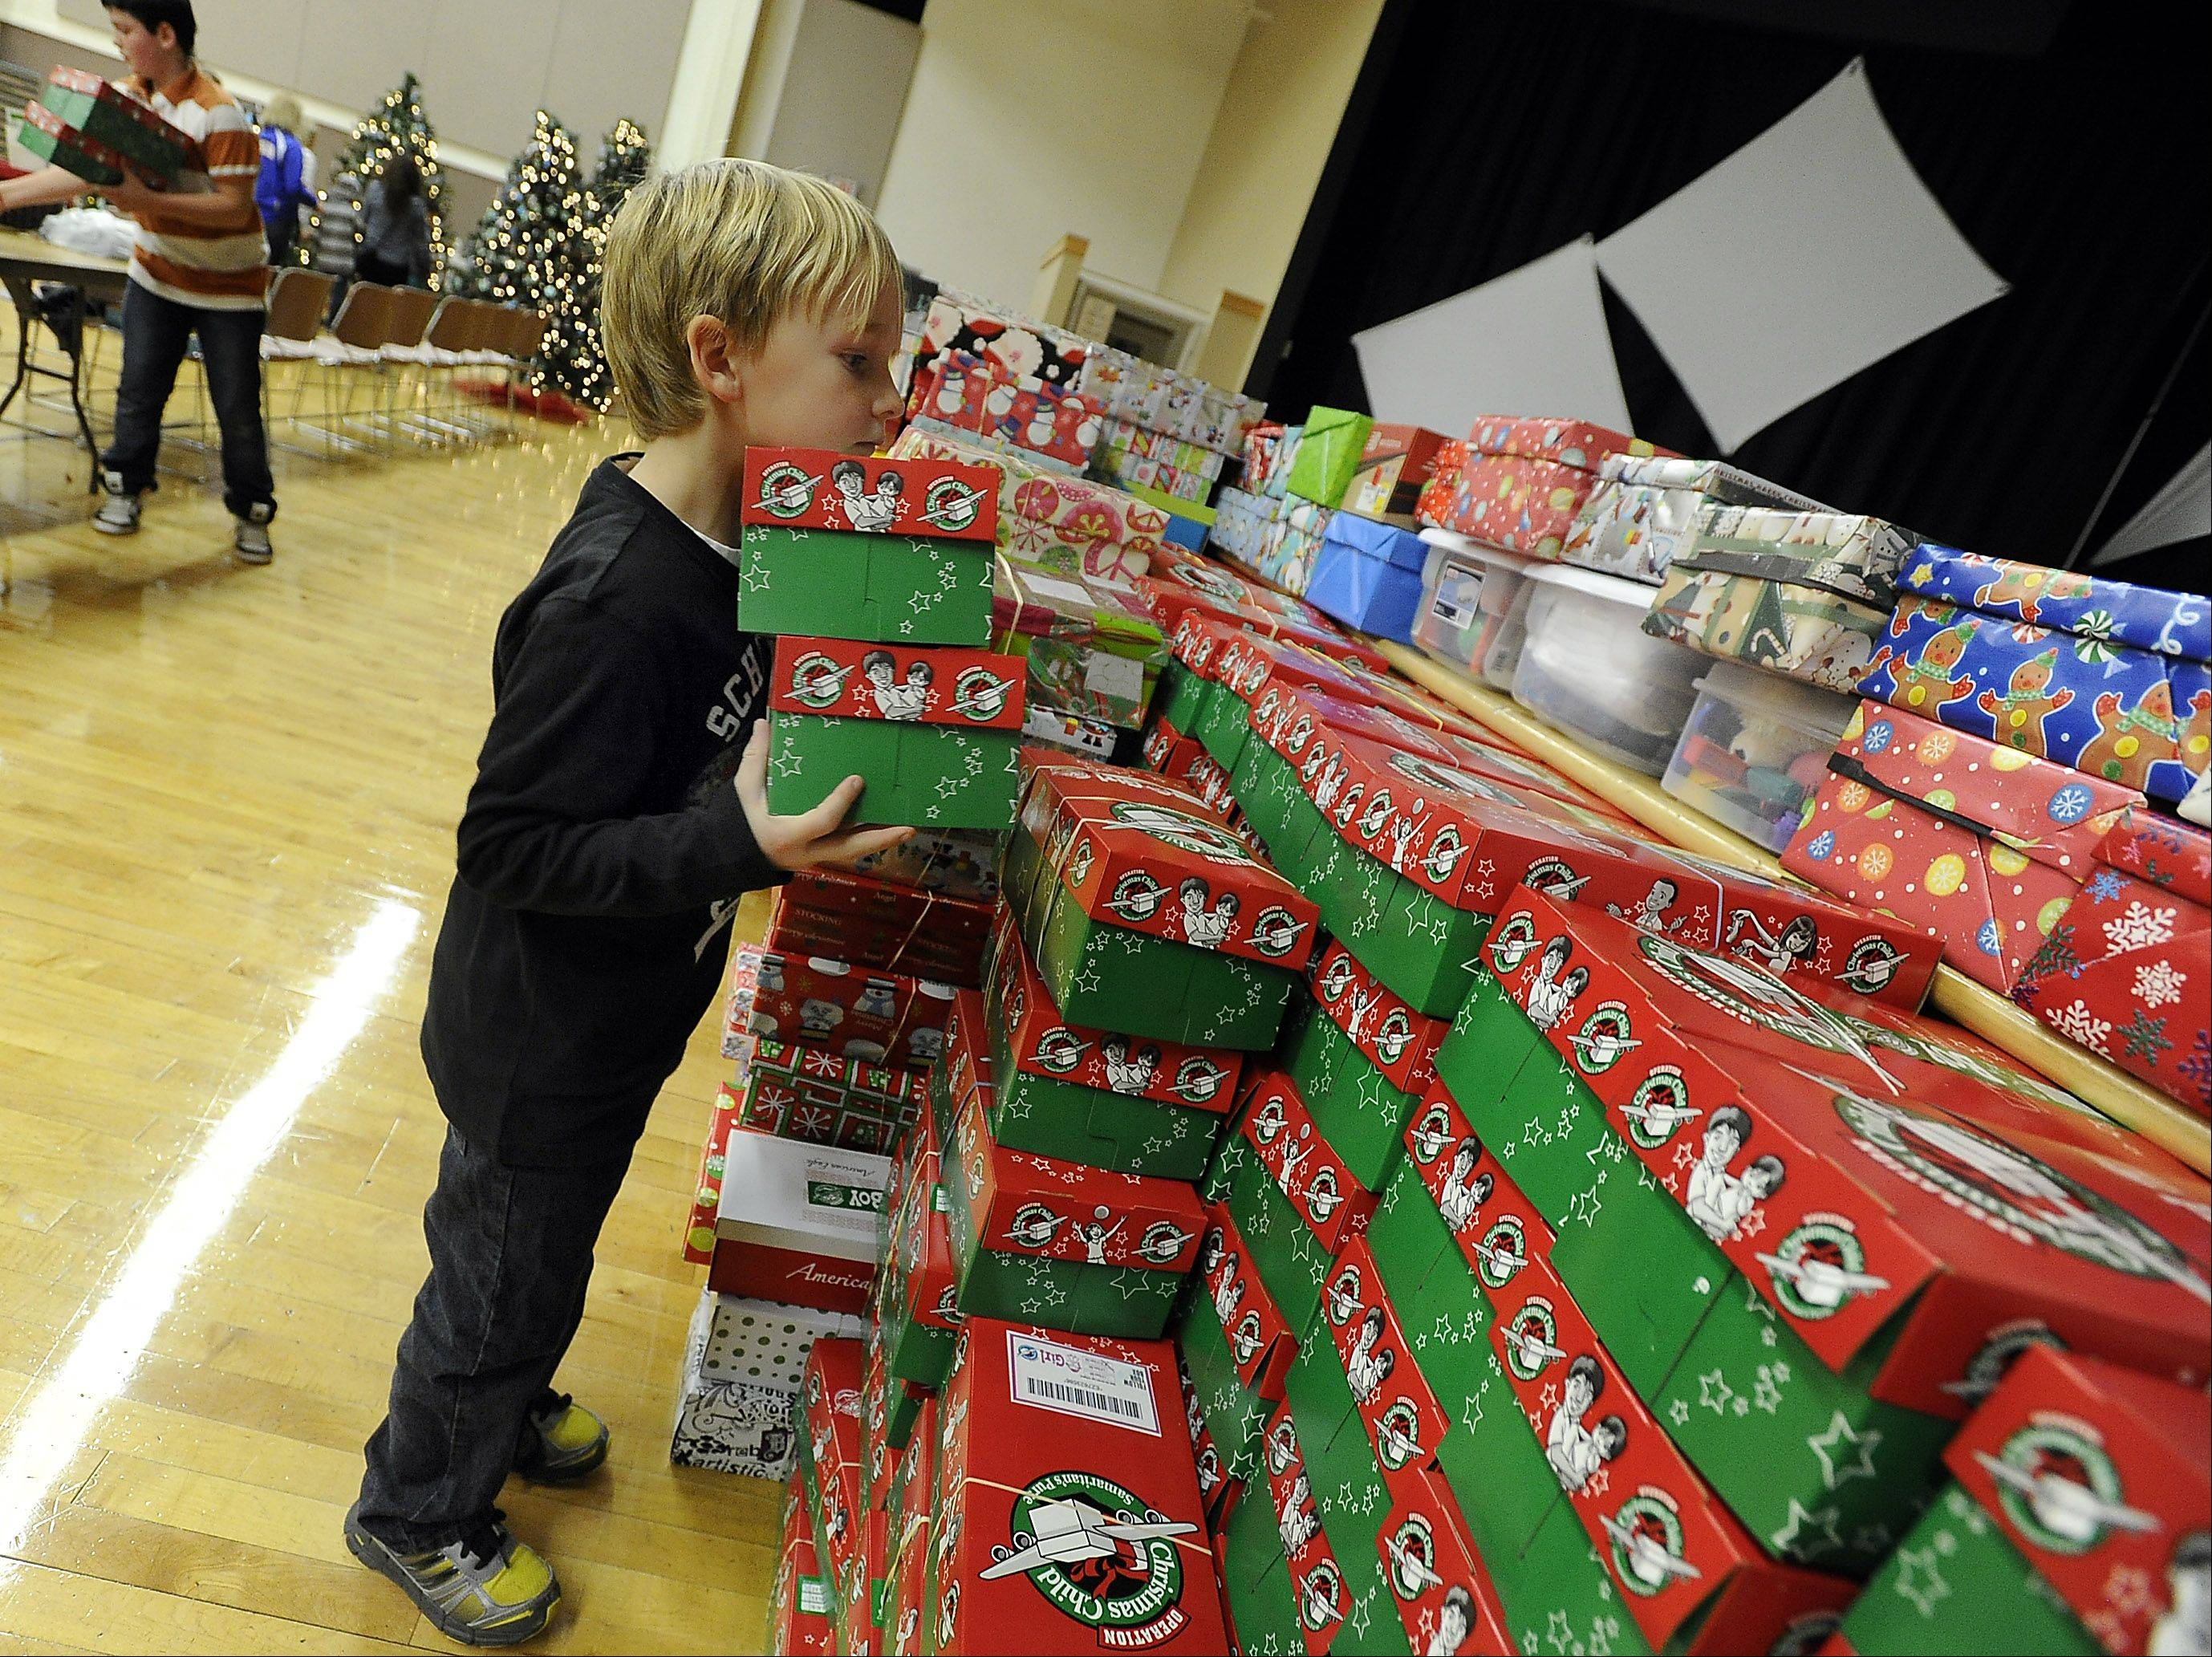 Grayson Peterson, 6, of Wisconsin, stacks fully loaded Christmas boxes at Operation Christmas Child at Immanuel Church in Gurnee on Saturday. He was helping out his grandfather Doug Peterson who is from Lbertyville.